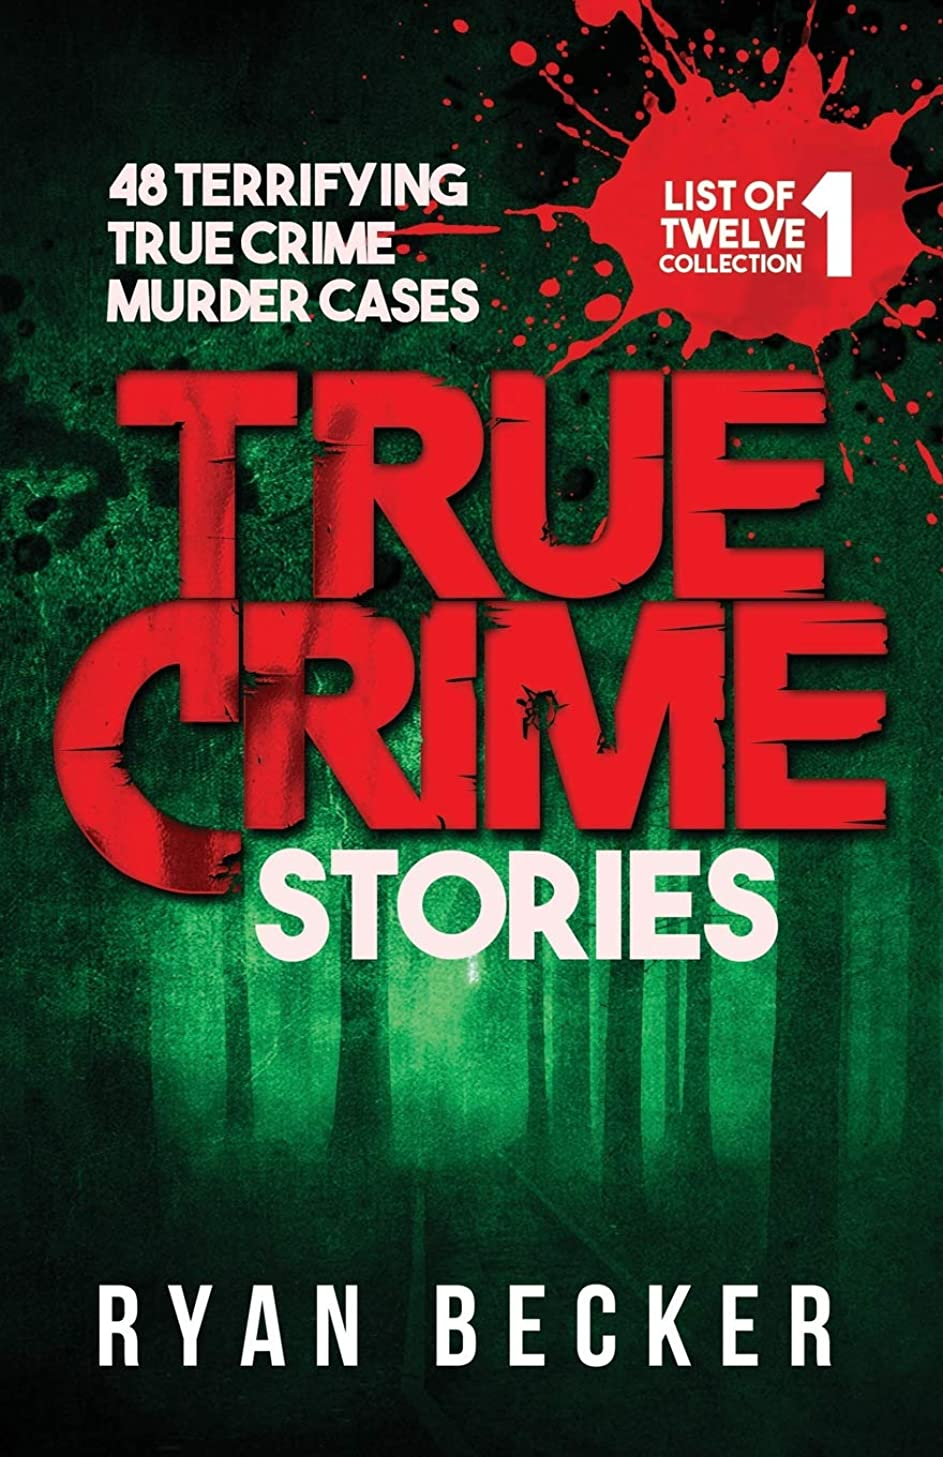 小道急襲汚染されたTrue Crime Stories: 48 Terrifying True Crime Murder Cases (List of Twelve Collection)